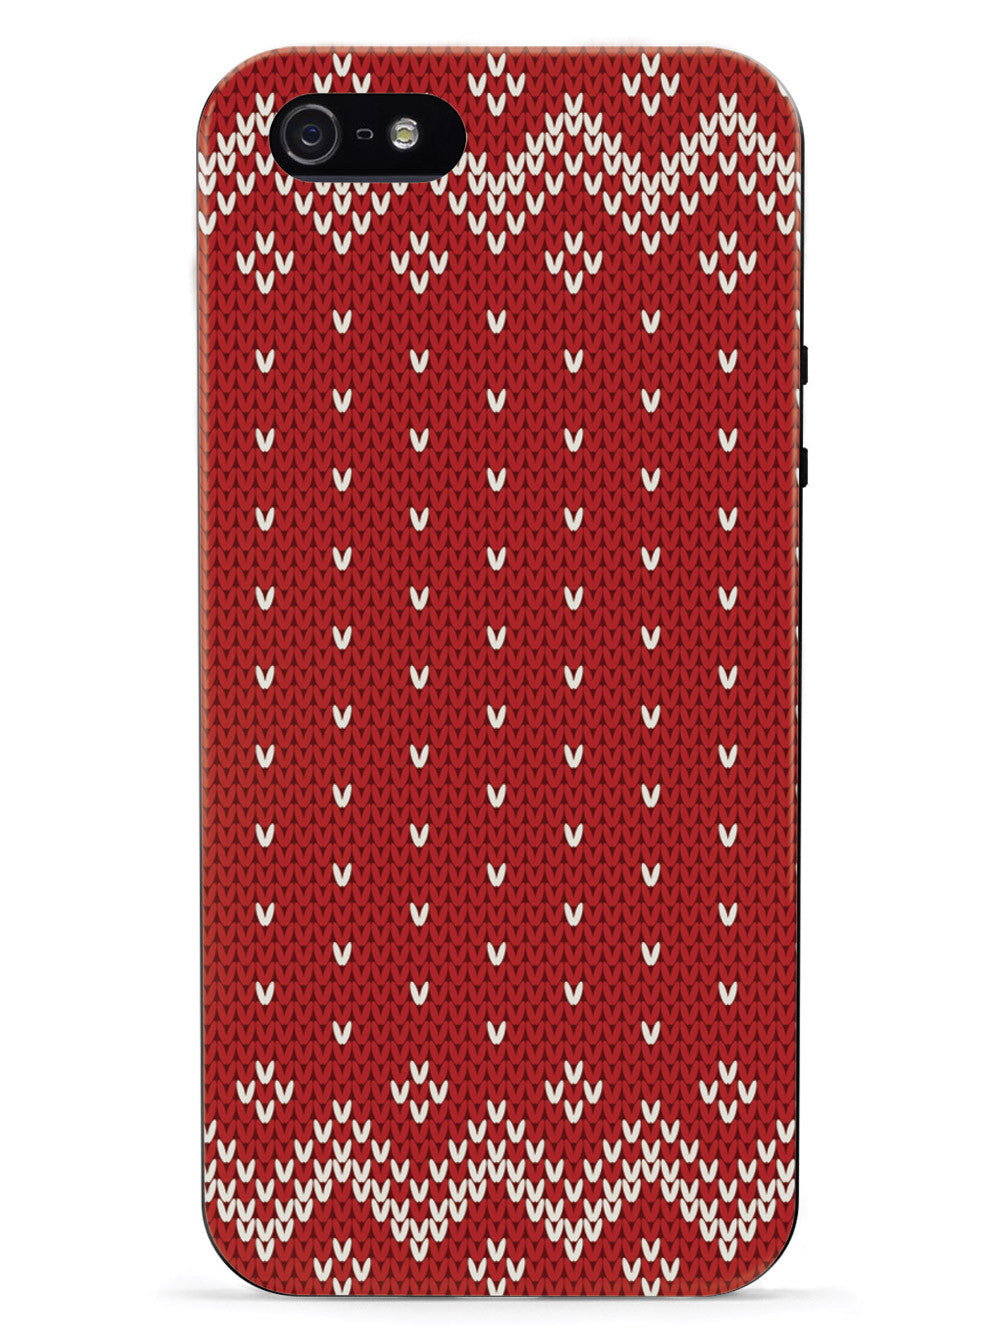 Red and White Sweater Texturized - Black Case